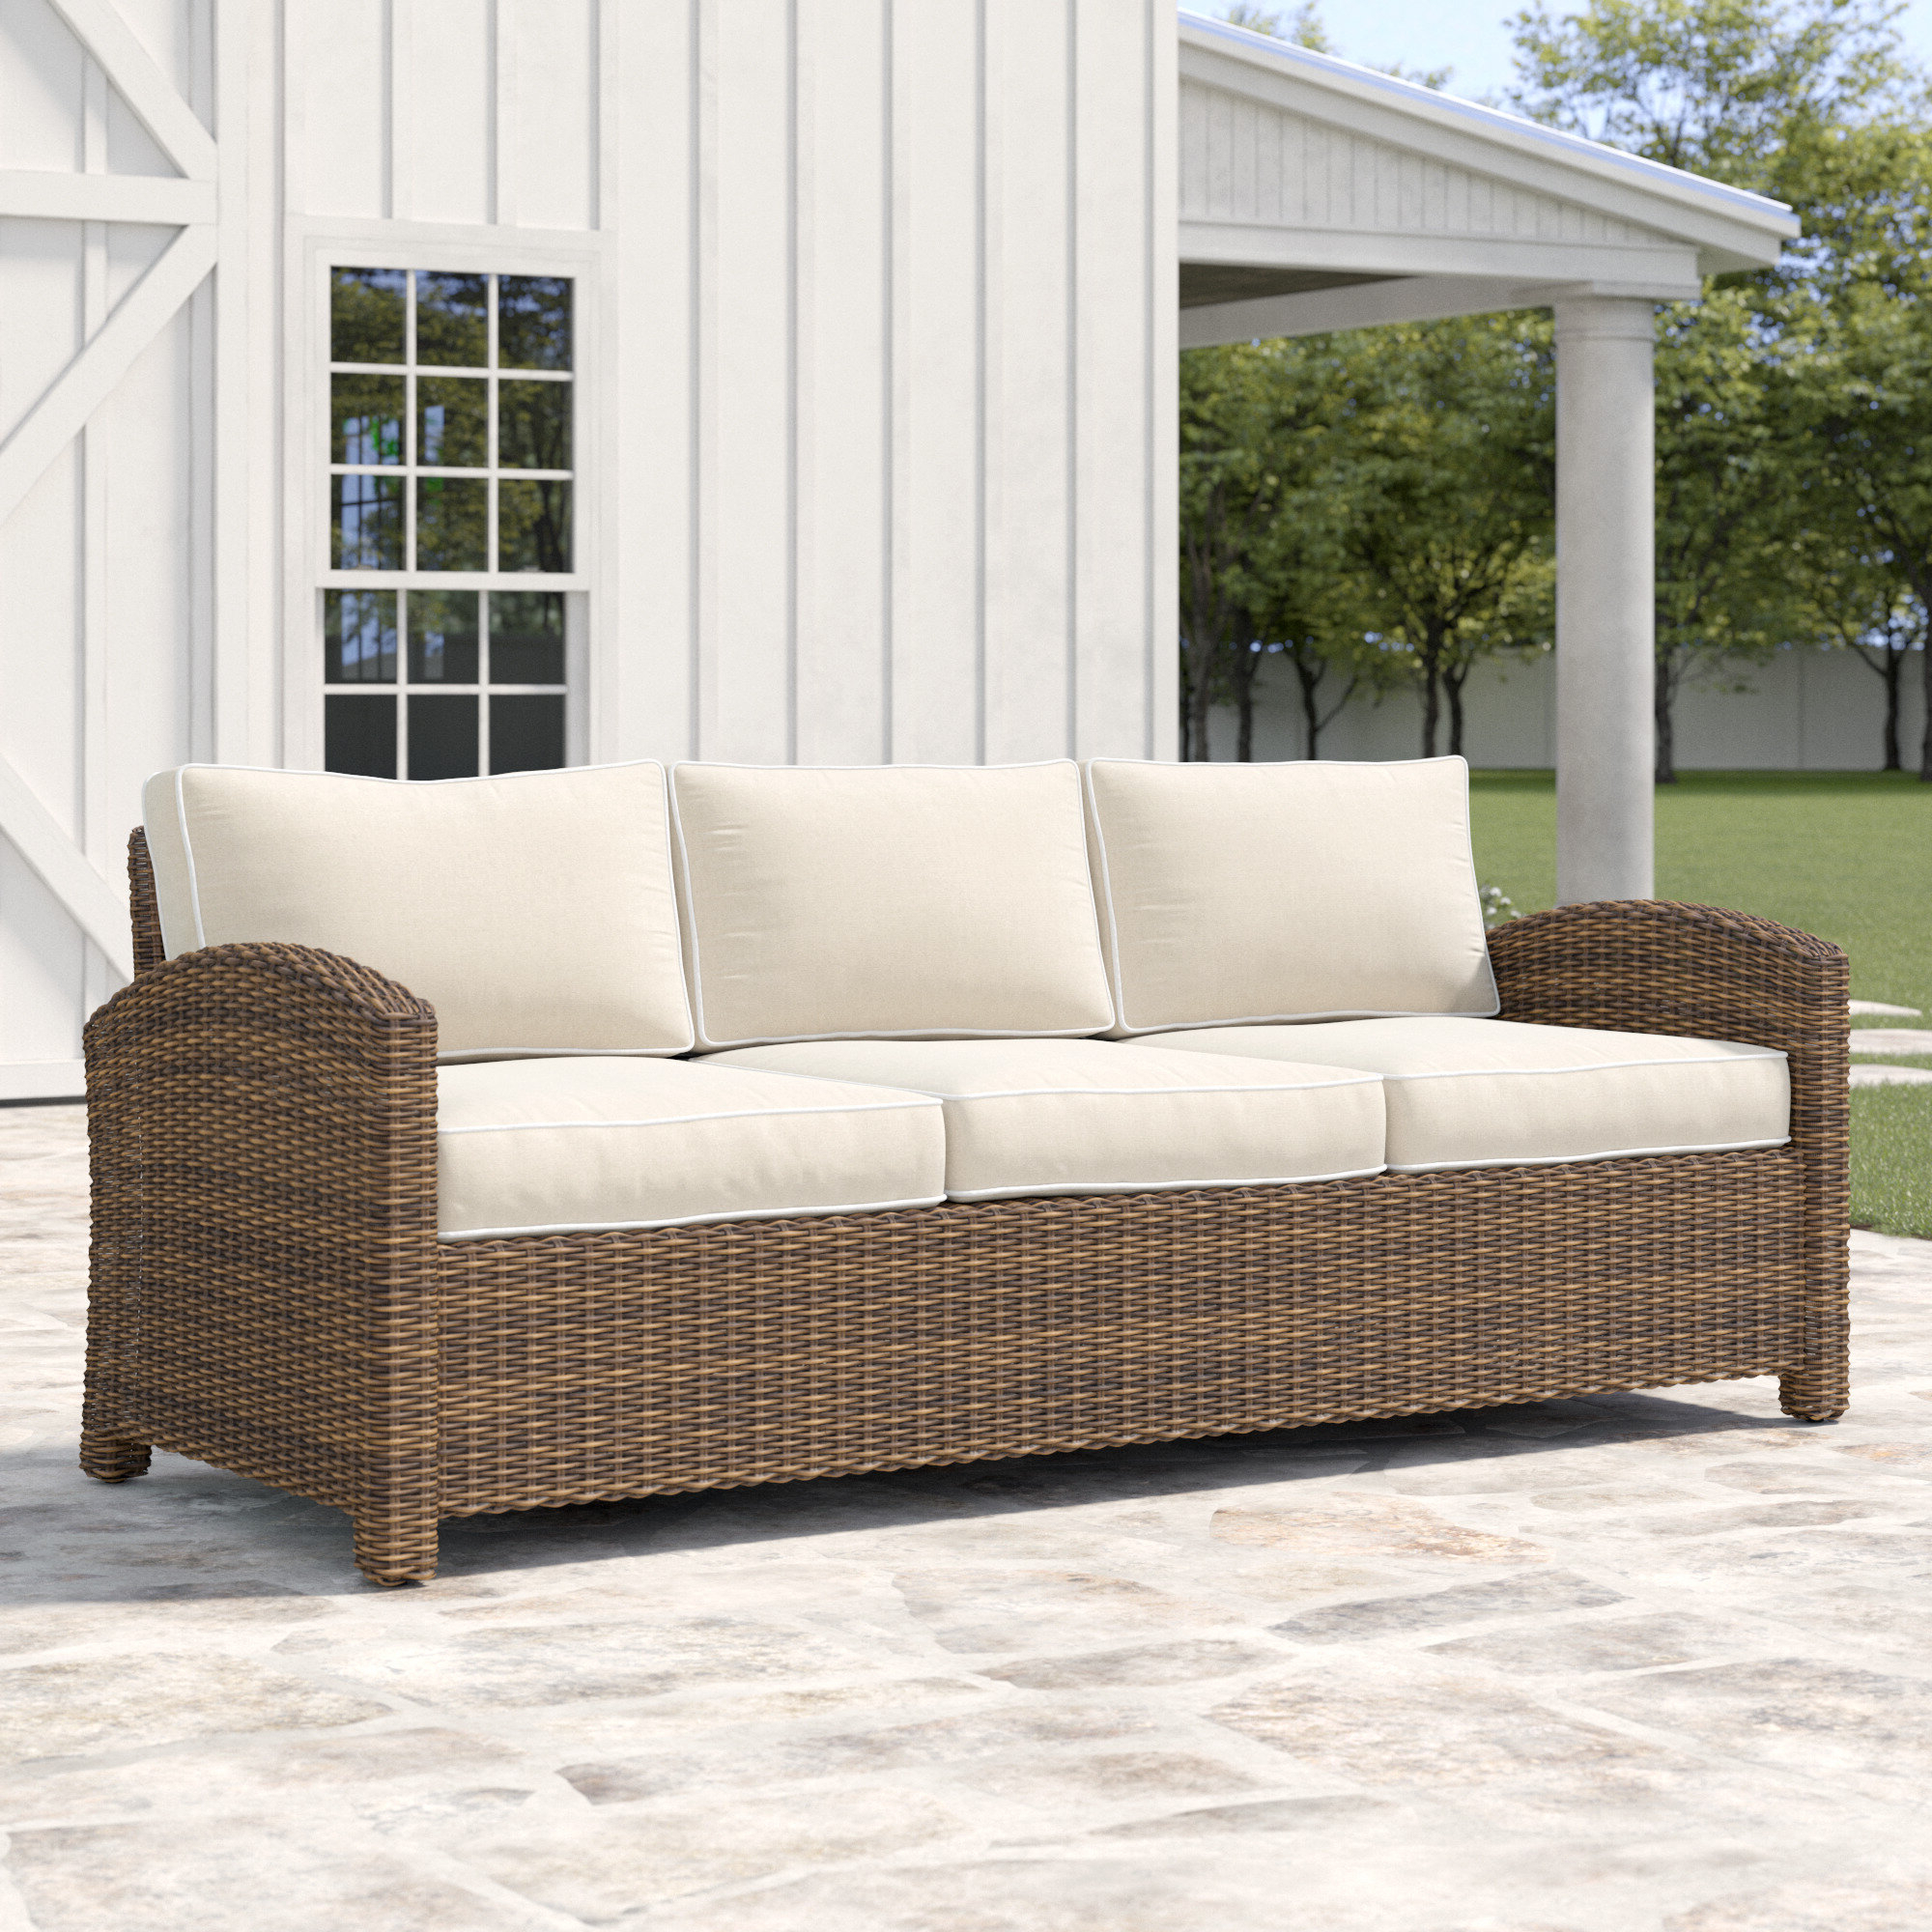 Newest Lawson Patio Sofas With Cushions Within Lawson Patio Sofa With Cushions (View 4 of 25)